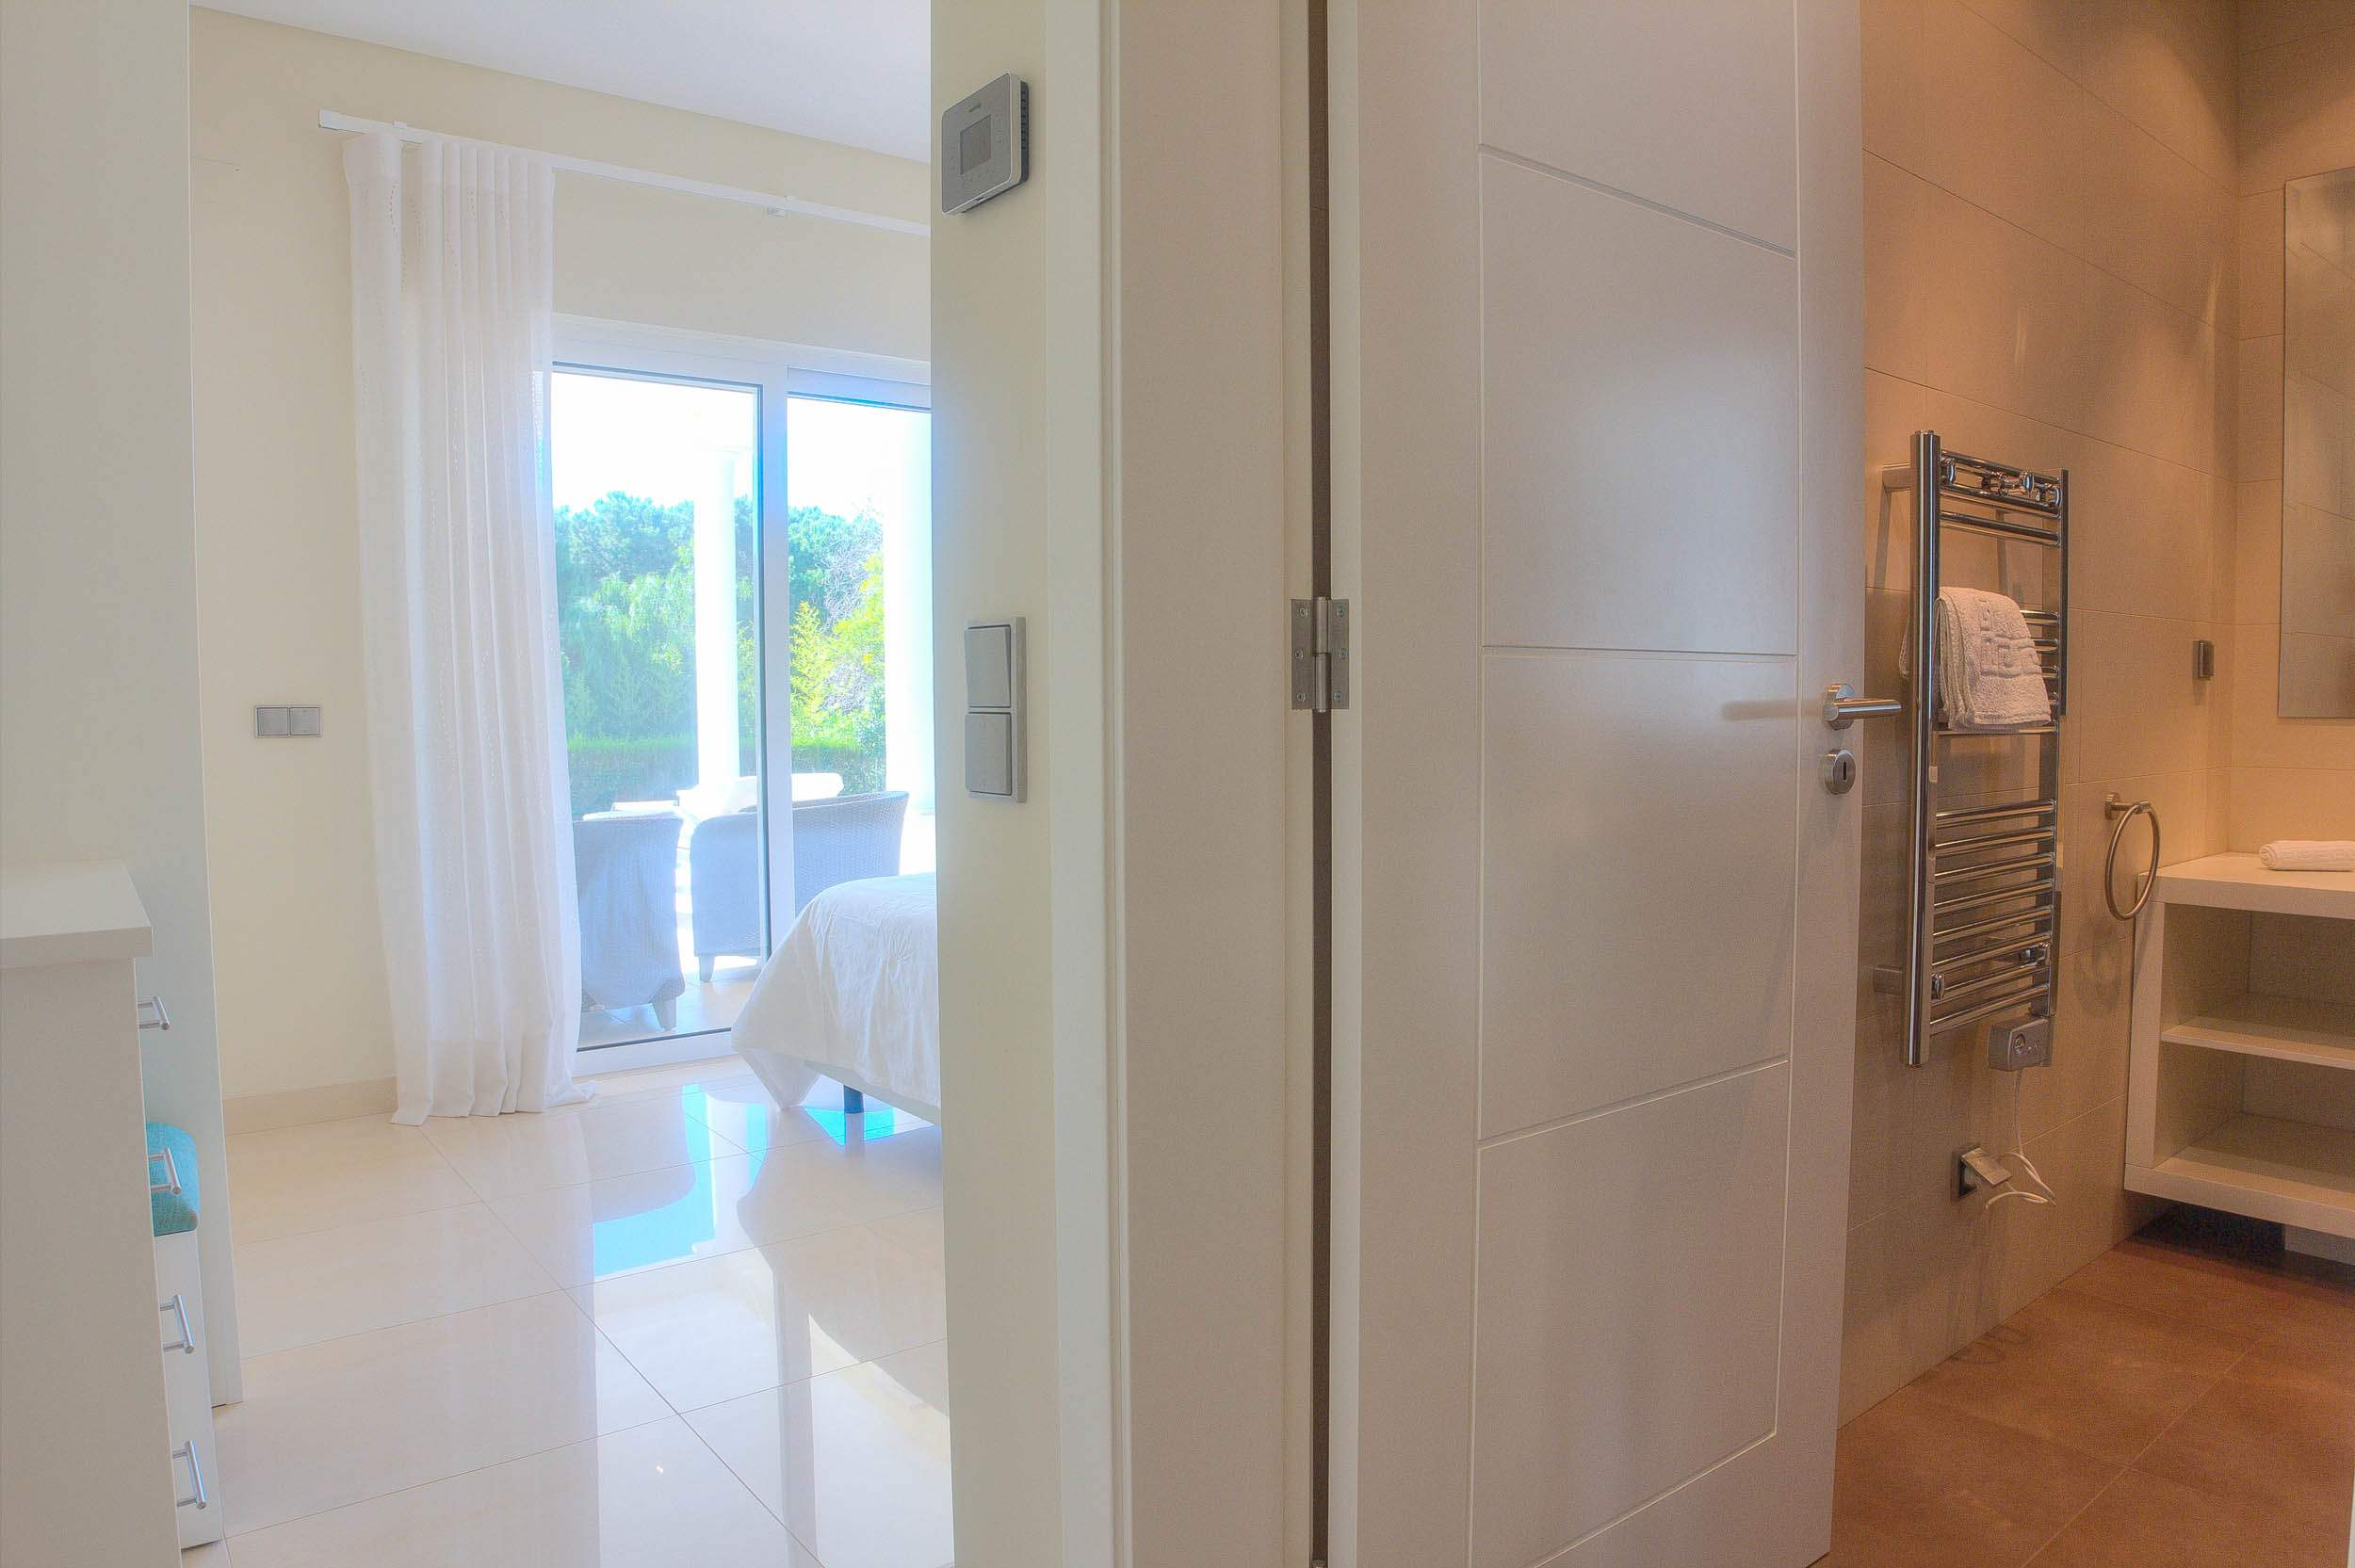 Villa Vida Doce, 6 bedroom villa in Vilamoura Area, Algarve Photo #17